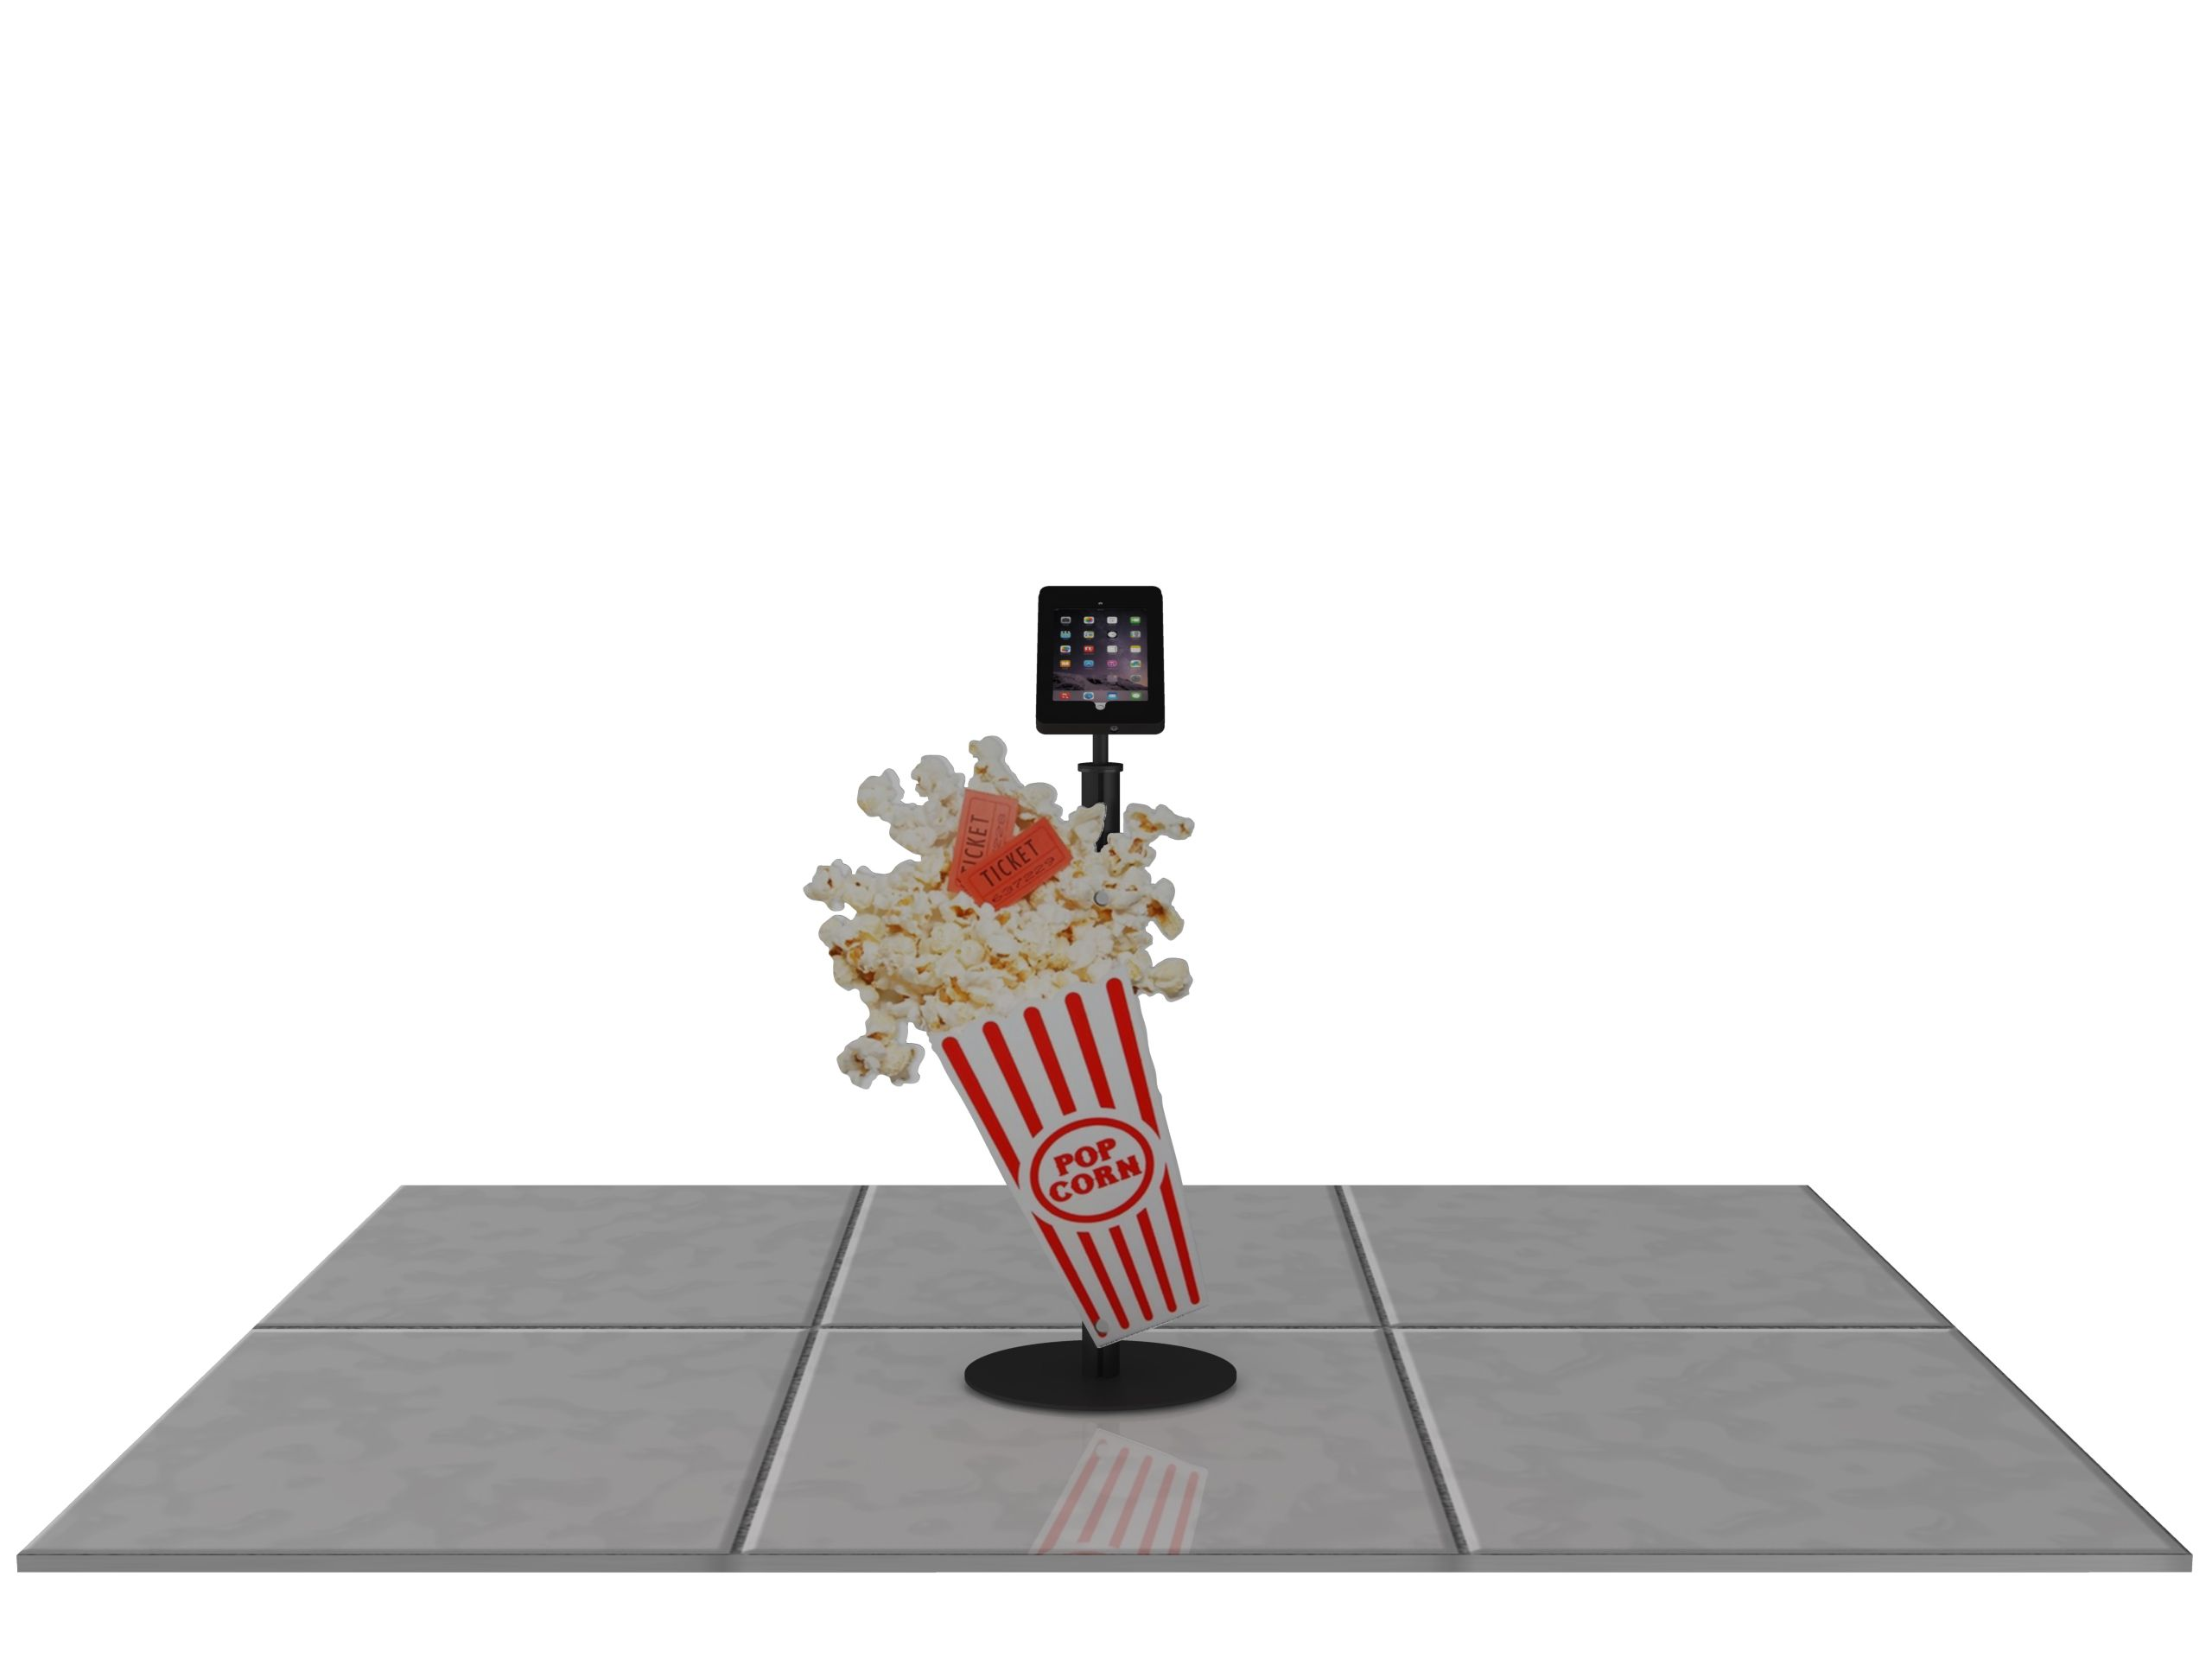 TECHNO DELUXE iPad Floor Display Stand with a rigid shaped